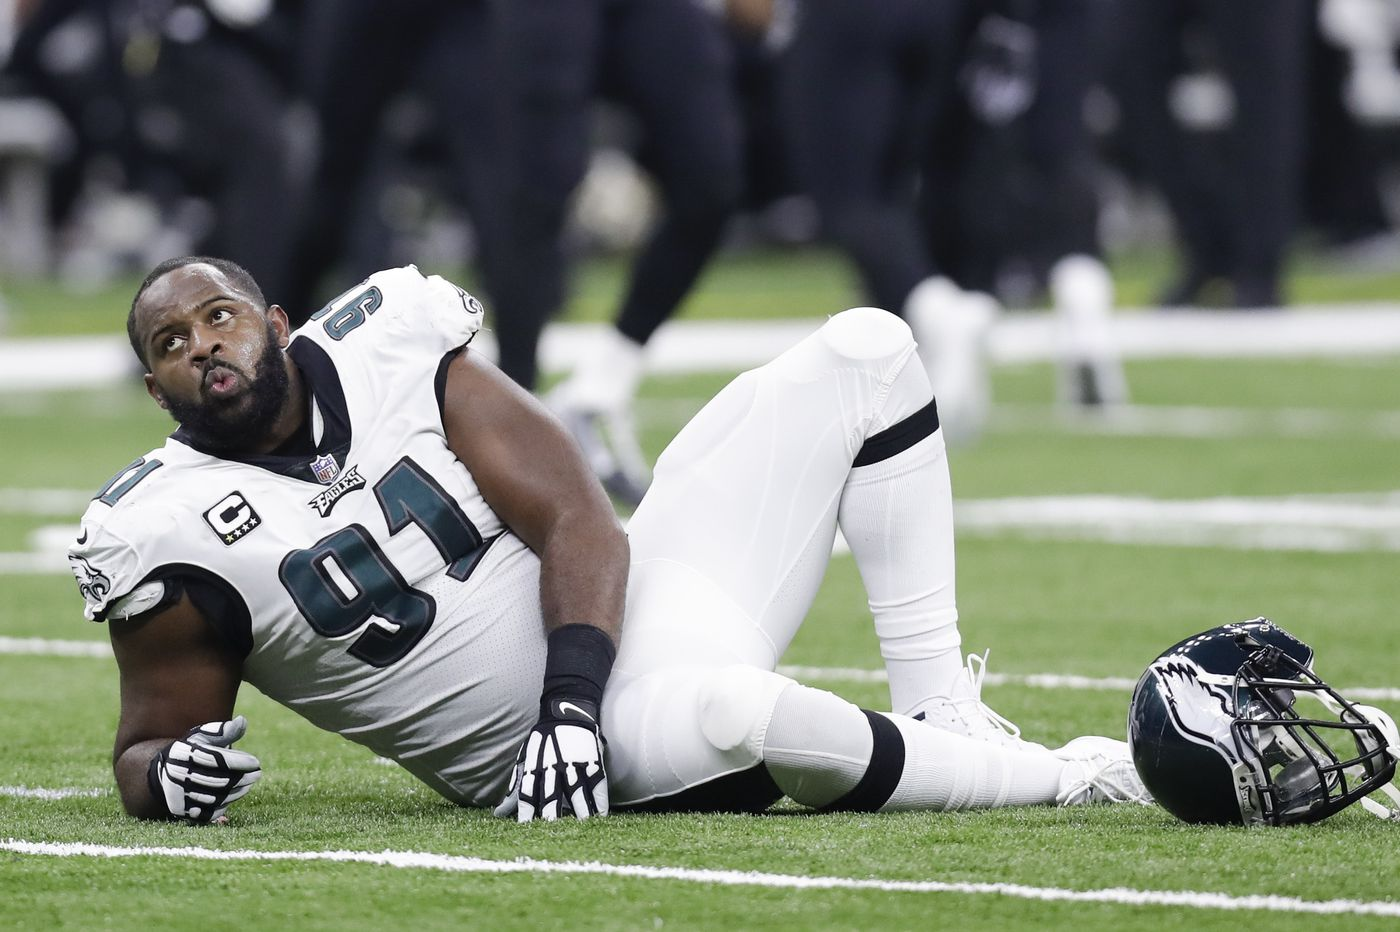 Eagles defensive line fights through injuries, but comes up short in tough playoff loss to Saints